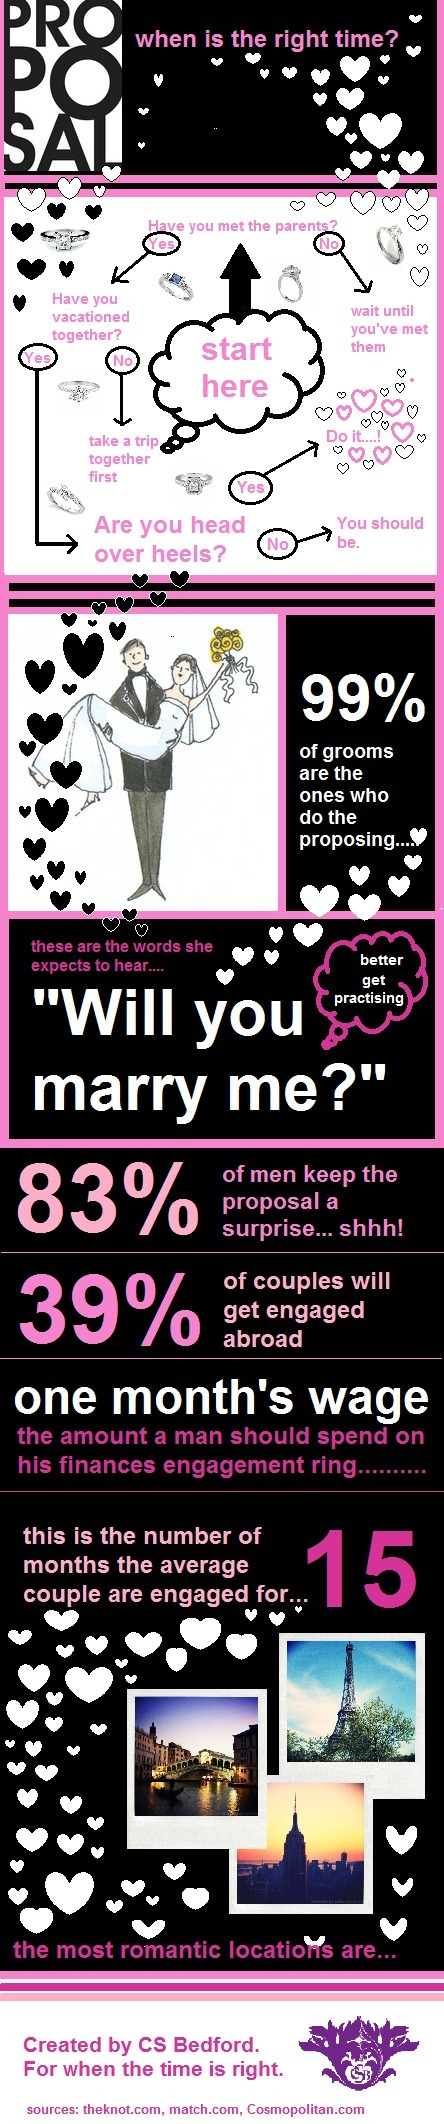 Getting Engaged Infographic | Boho Wedding Ideas | Florida Wedding & Photography Tips, Ideas, Inspiration & Comic Relief | Scoop.it